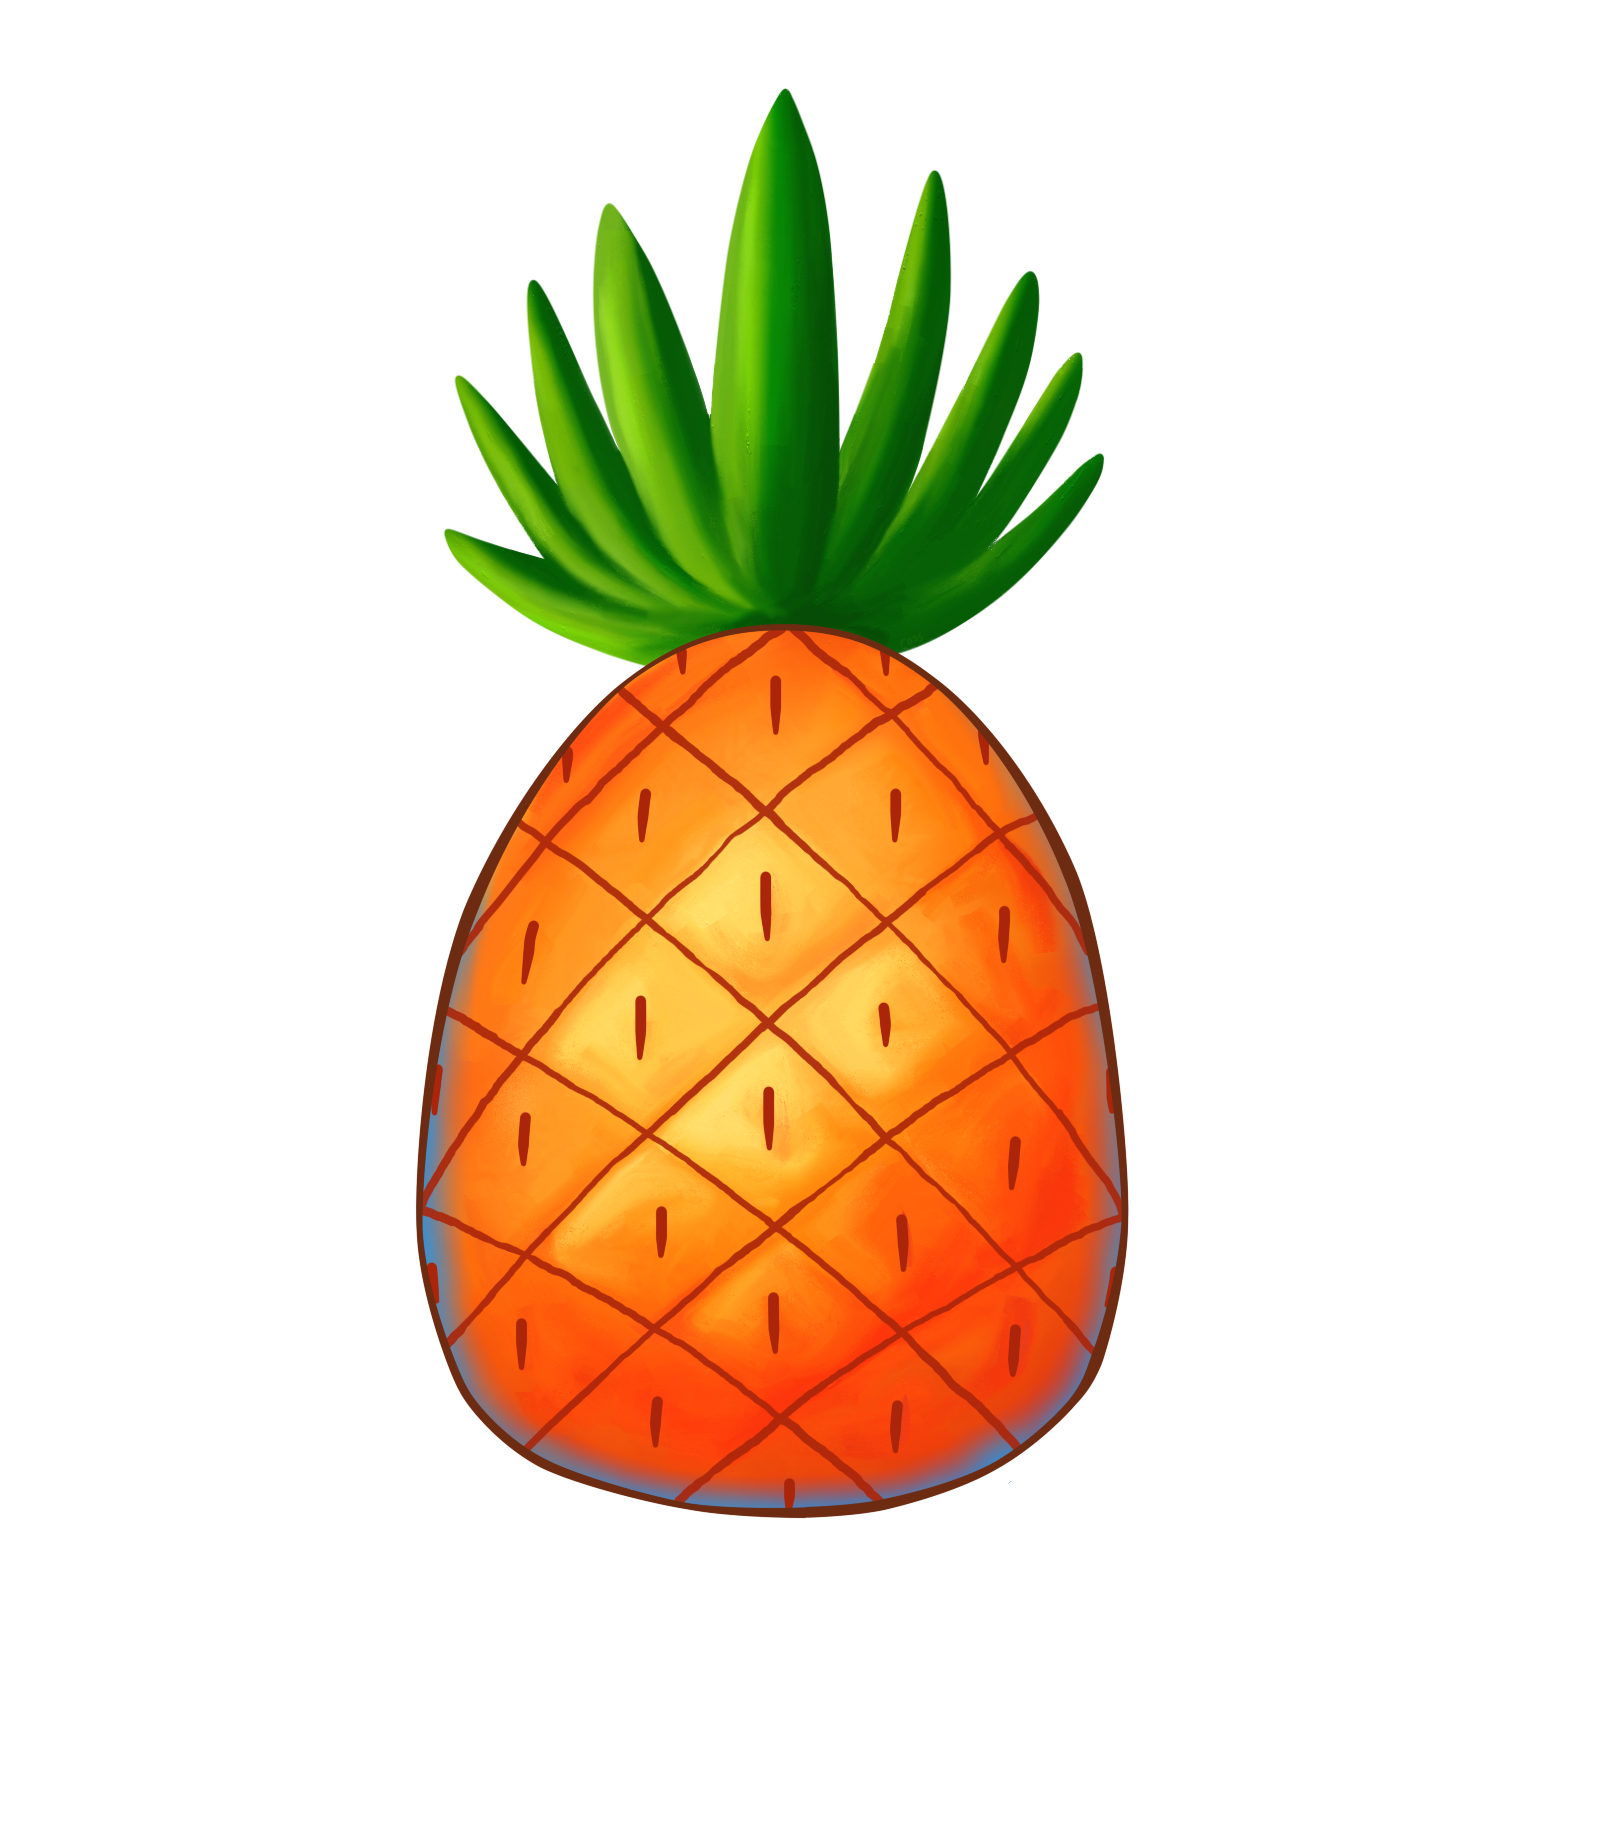 Tumblr collage stickers png. Pineapple clipart sticker